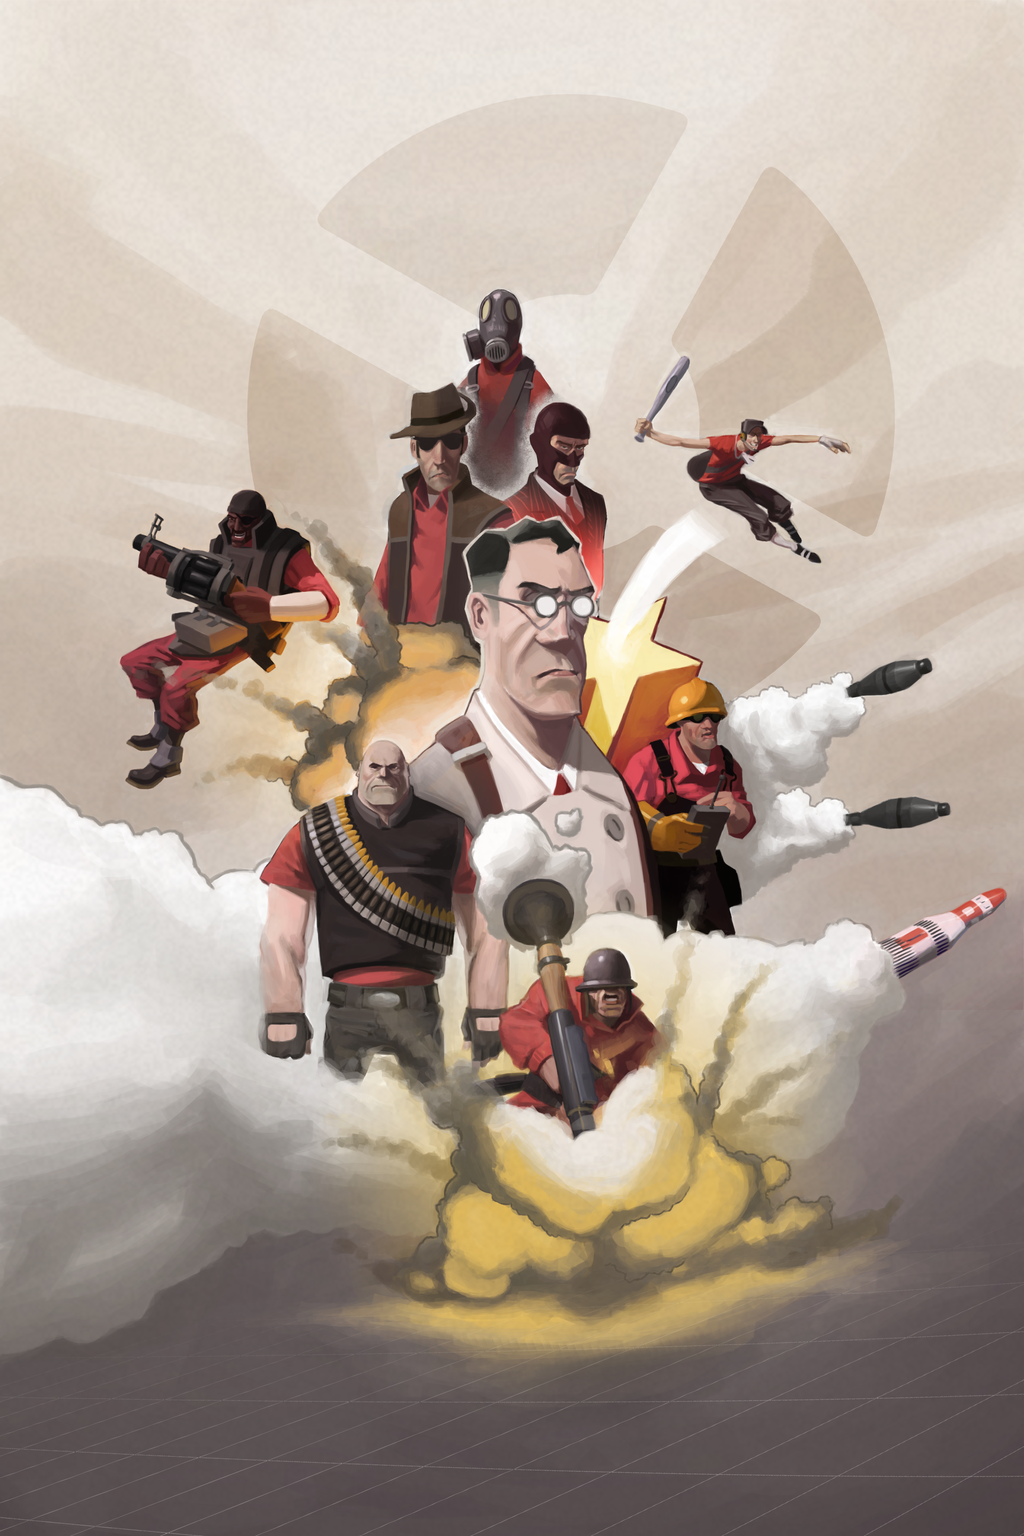 TF2 Poster